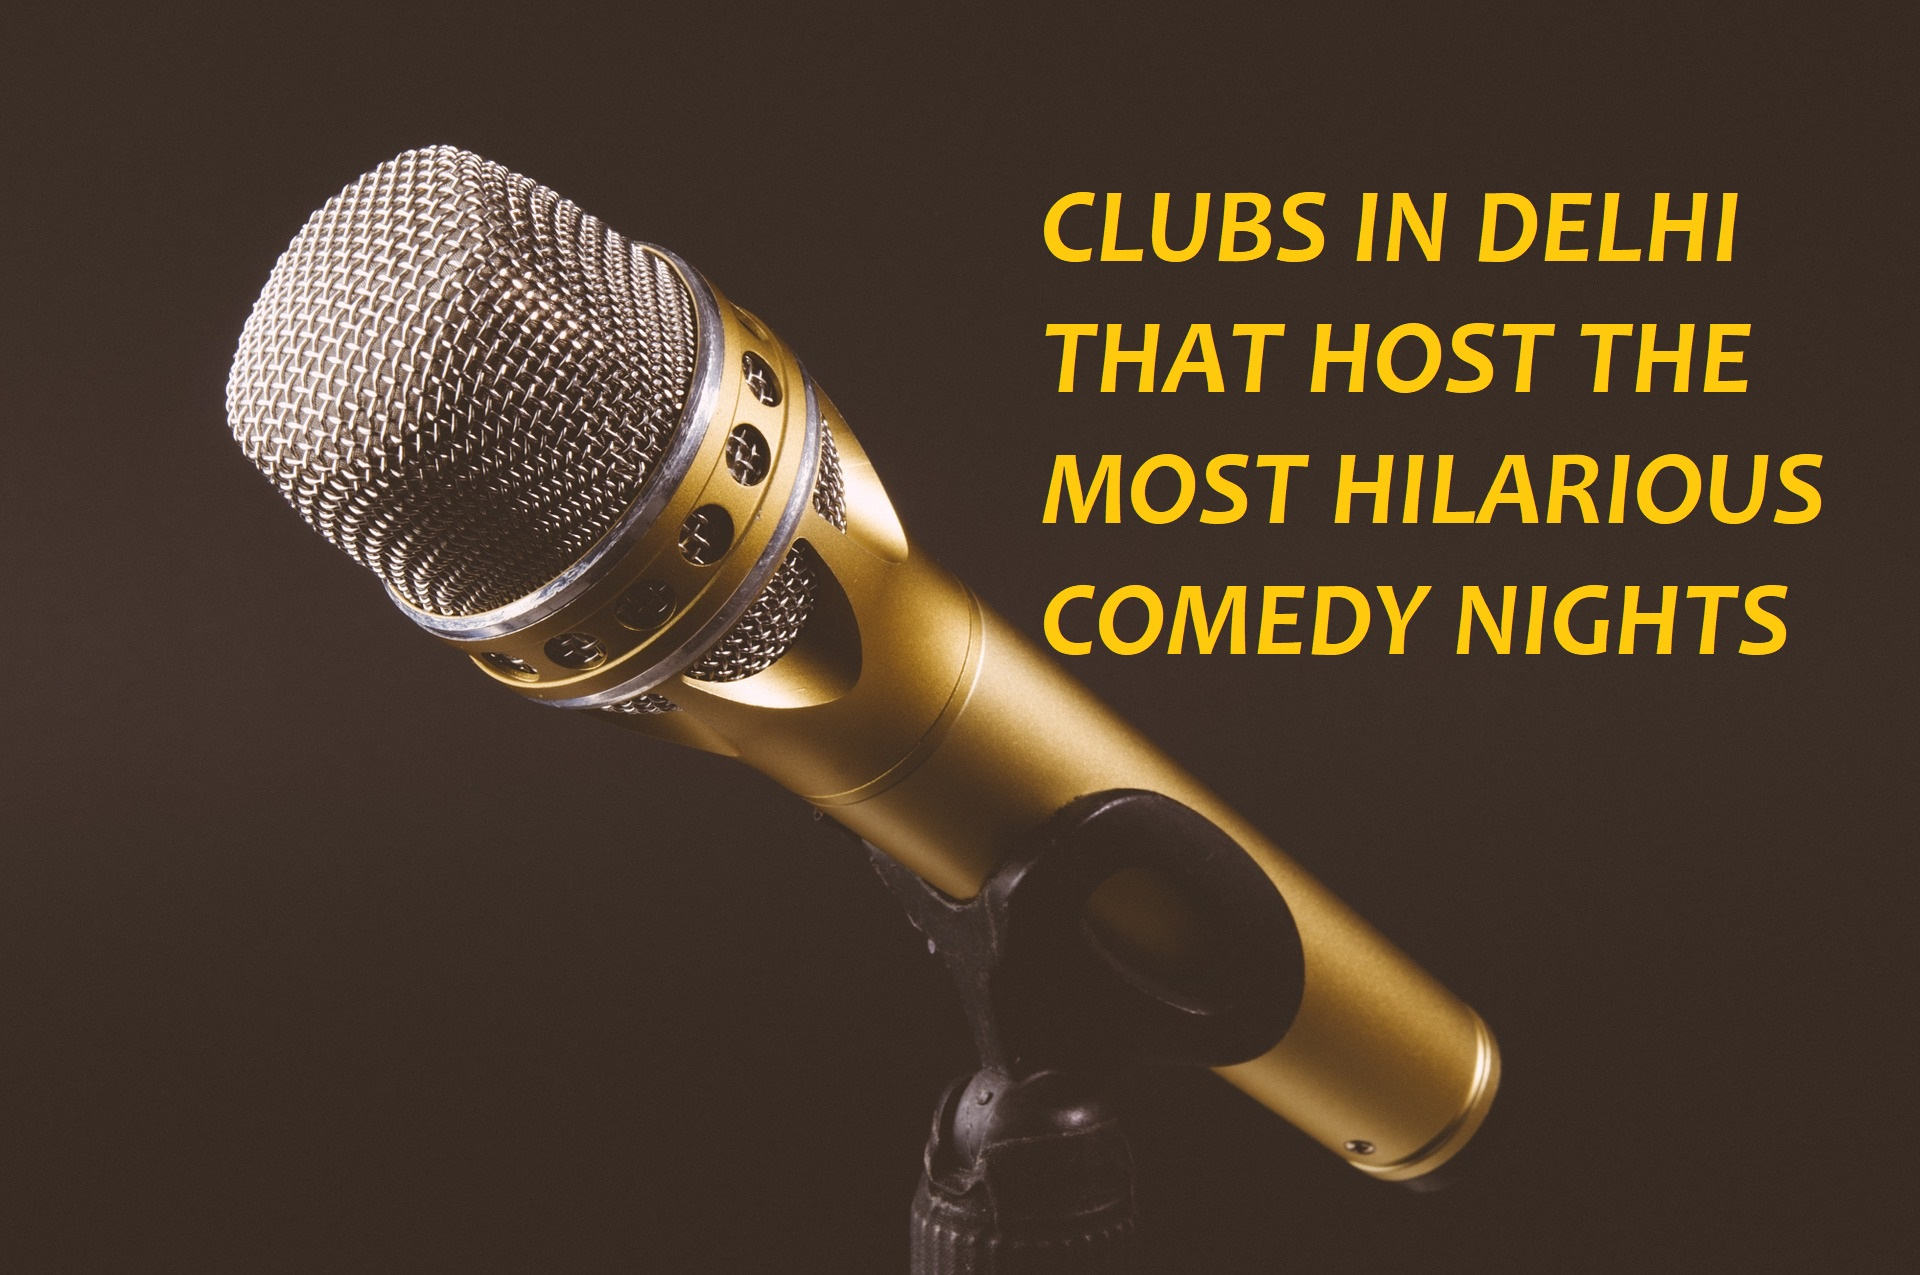 CLUBS IN DELHI THAT HOST THE MOST HILARIOUS COMEDY NIGHTS